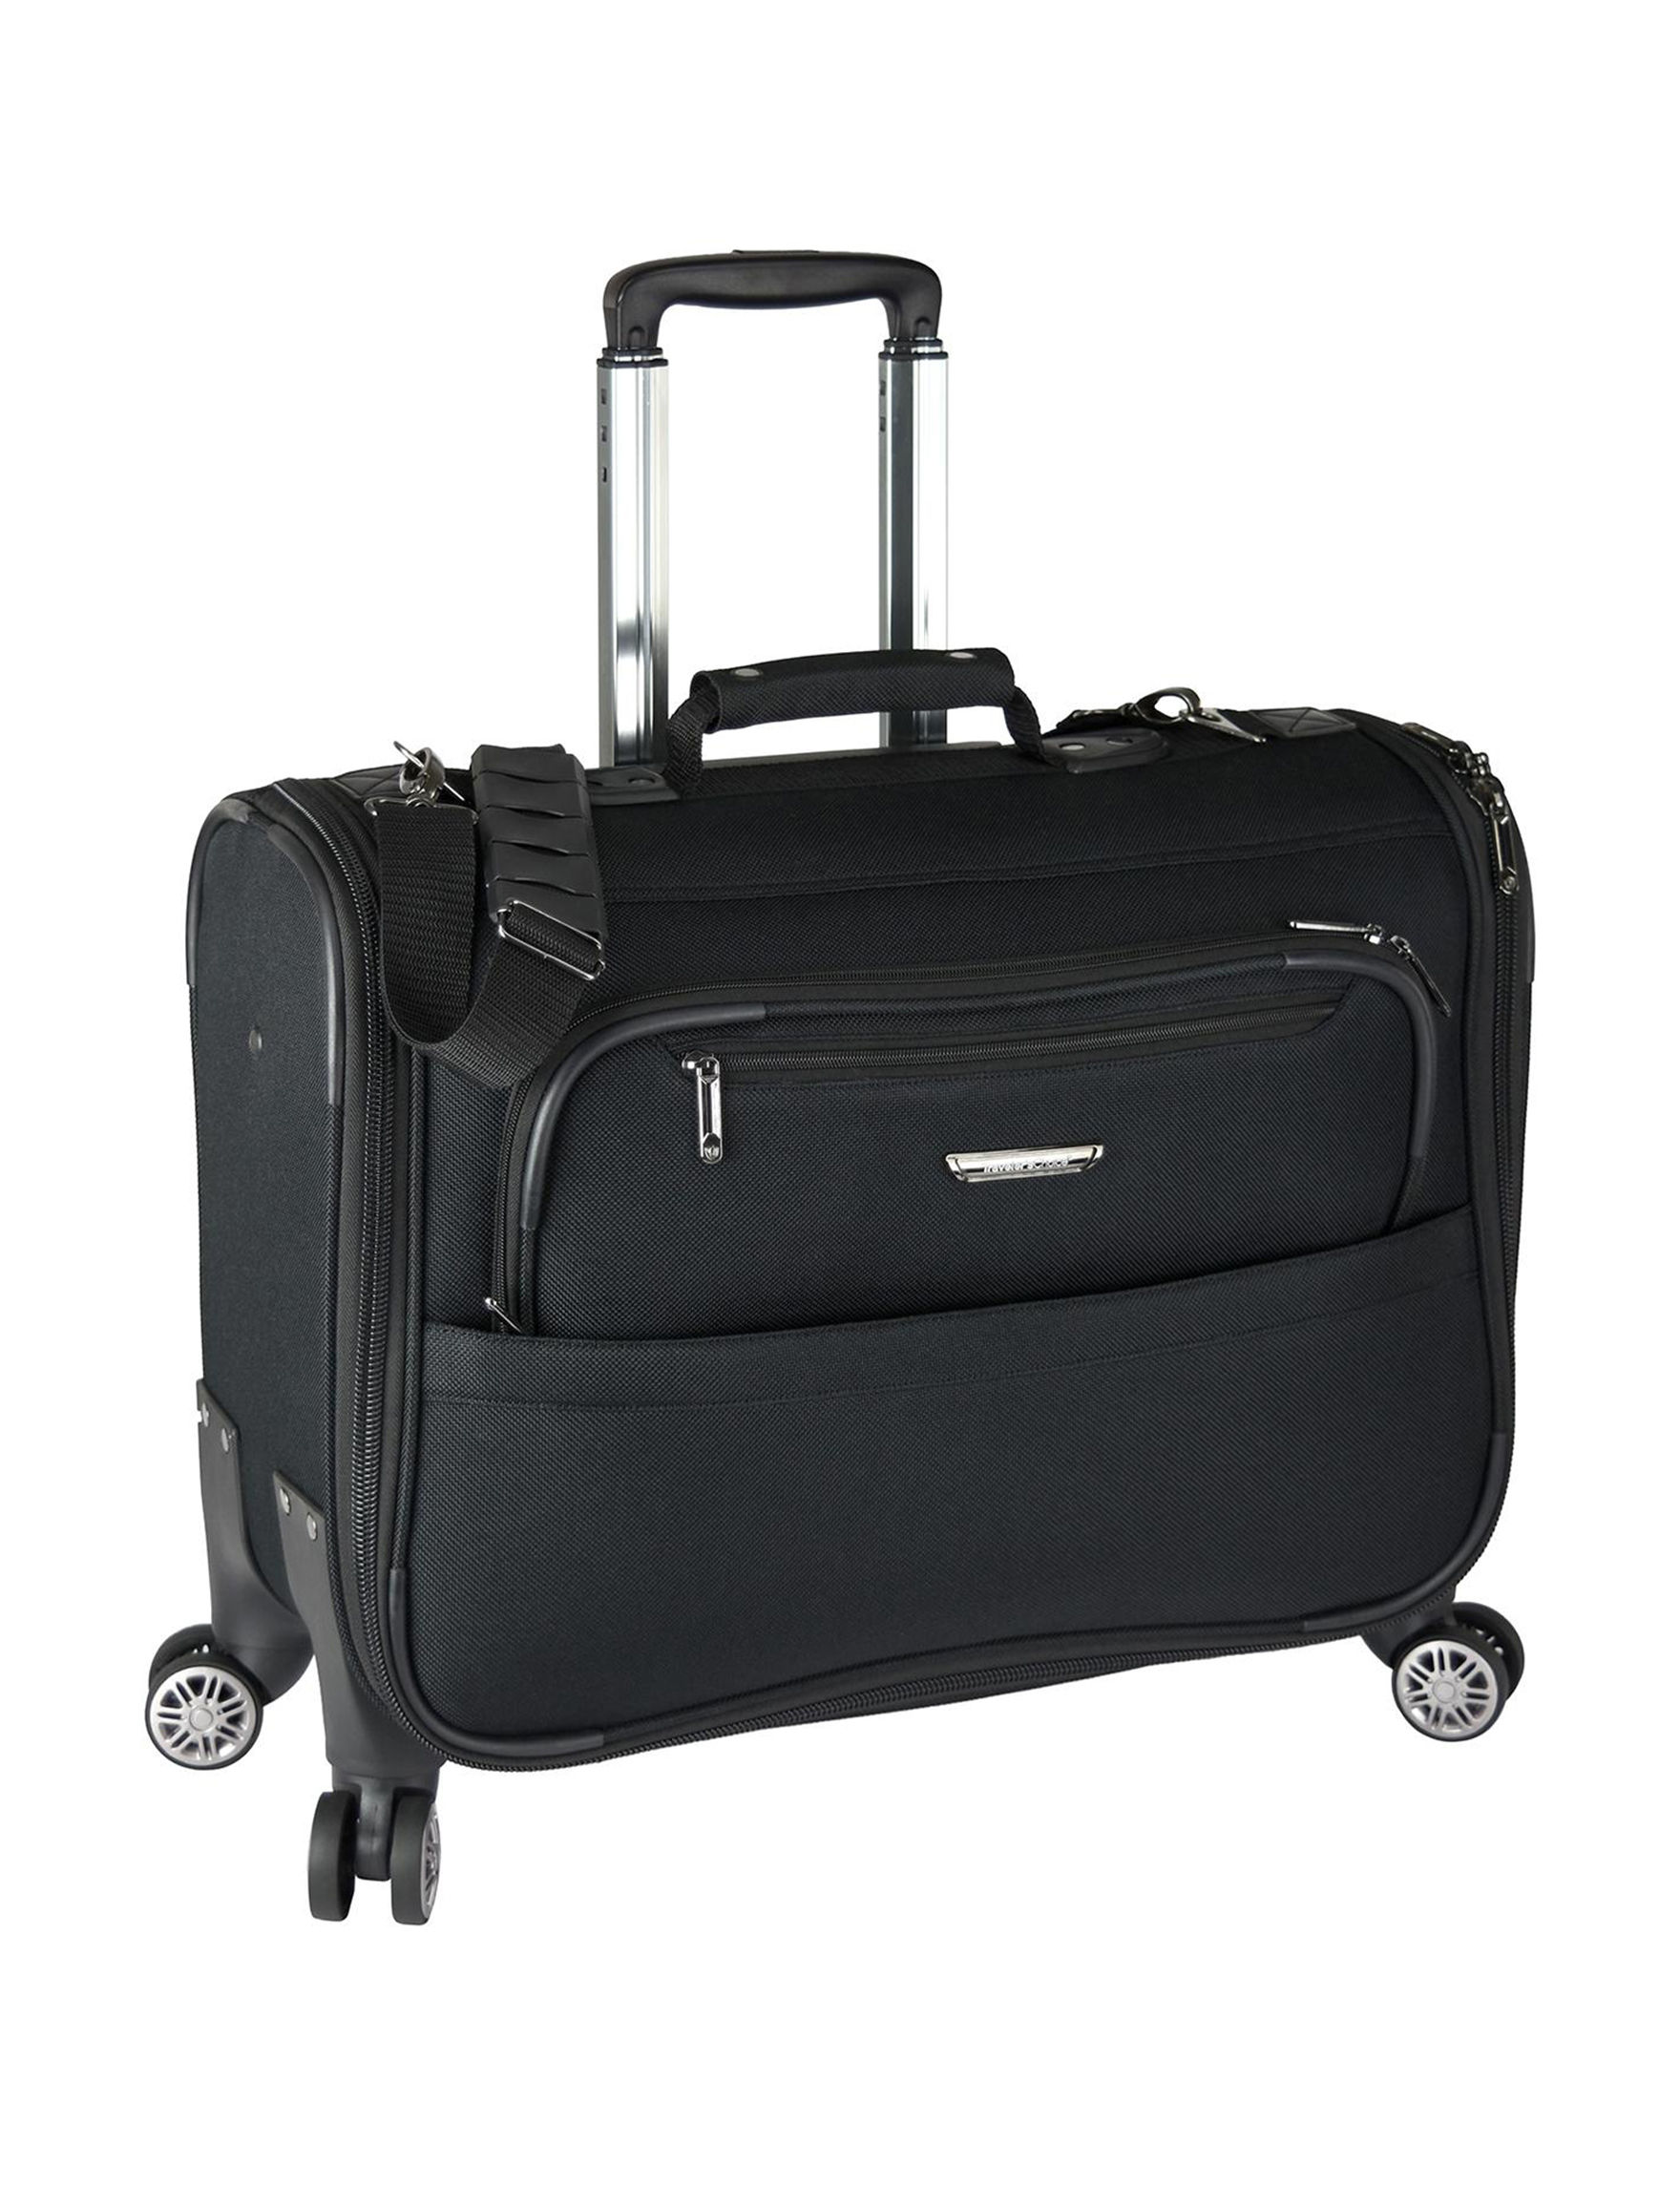 Travelers Choice Black Carry On Luggage Upright Spinners